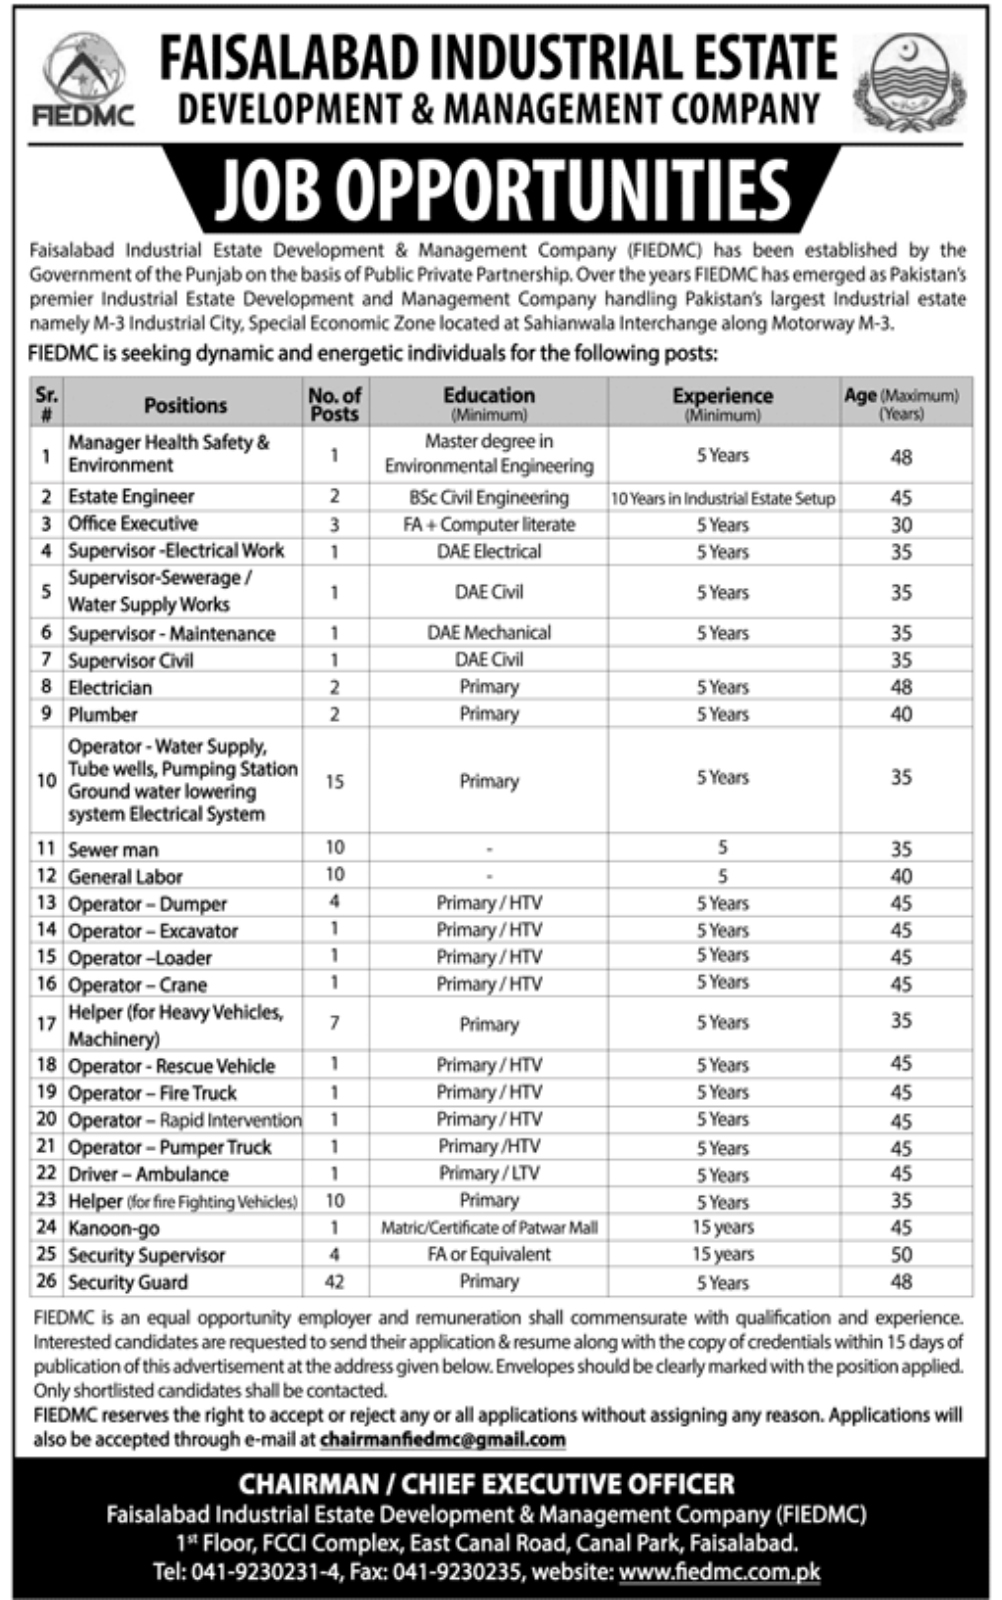 Faisalabad Industrial Estate Development & Management Company 125 Jobs 12February 2018 Daily Jang Newspaper